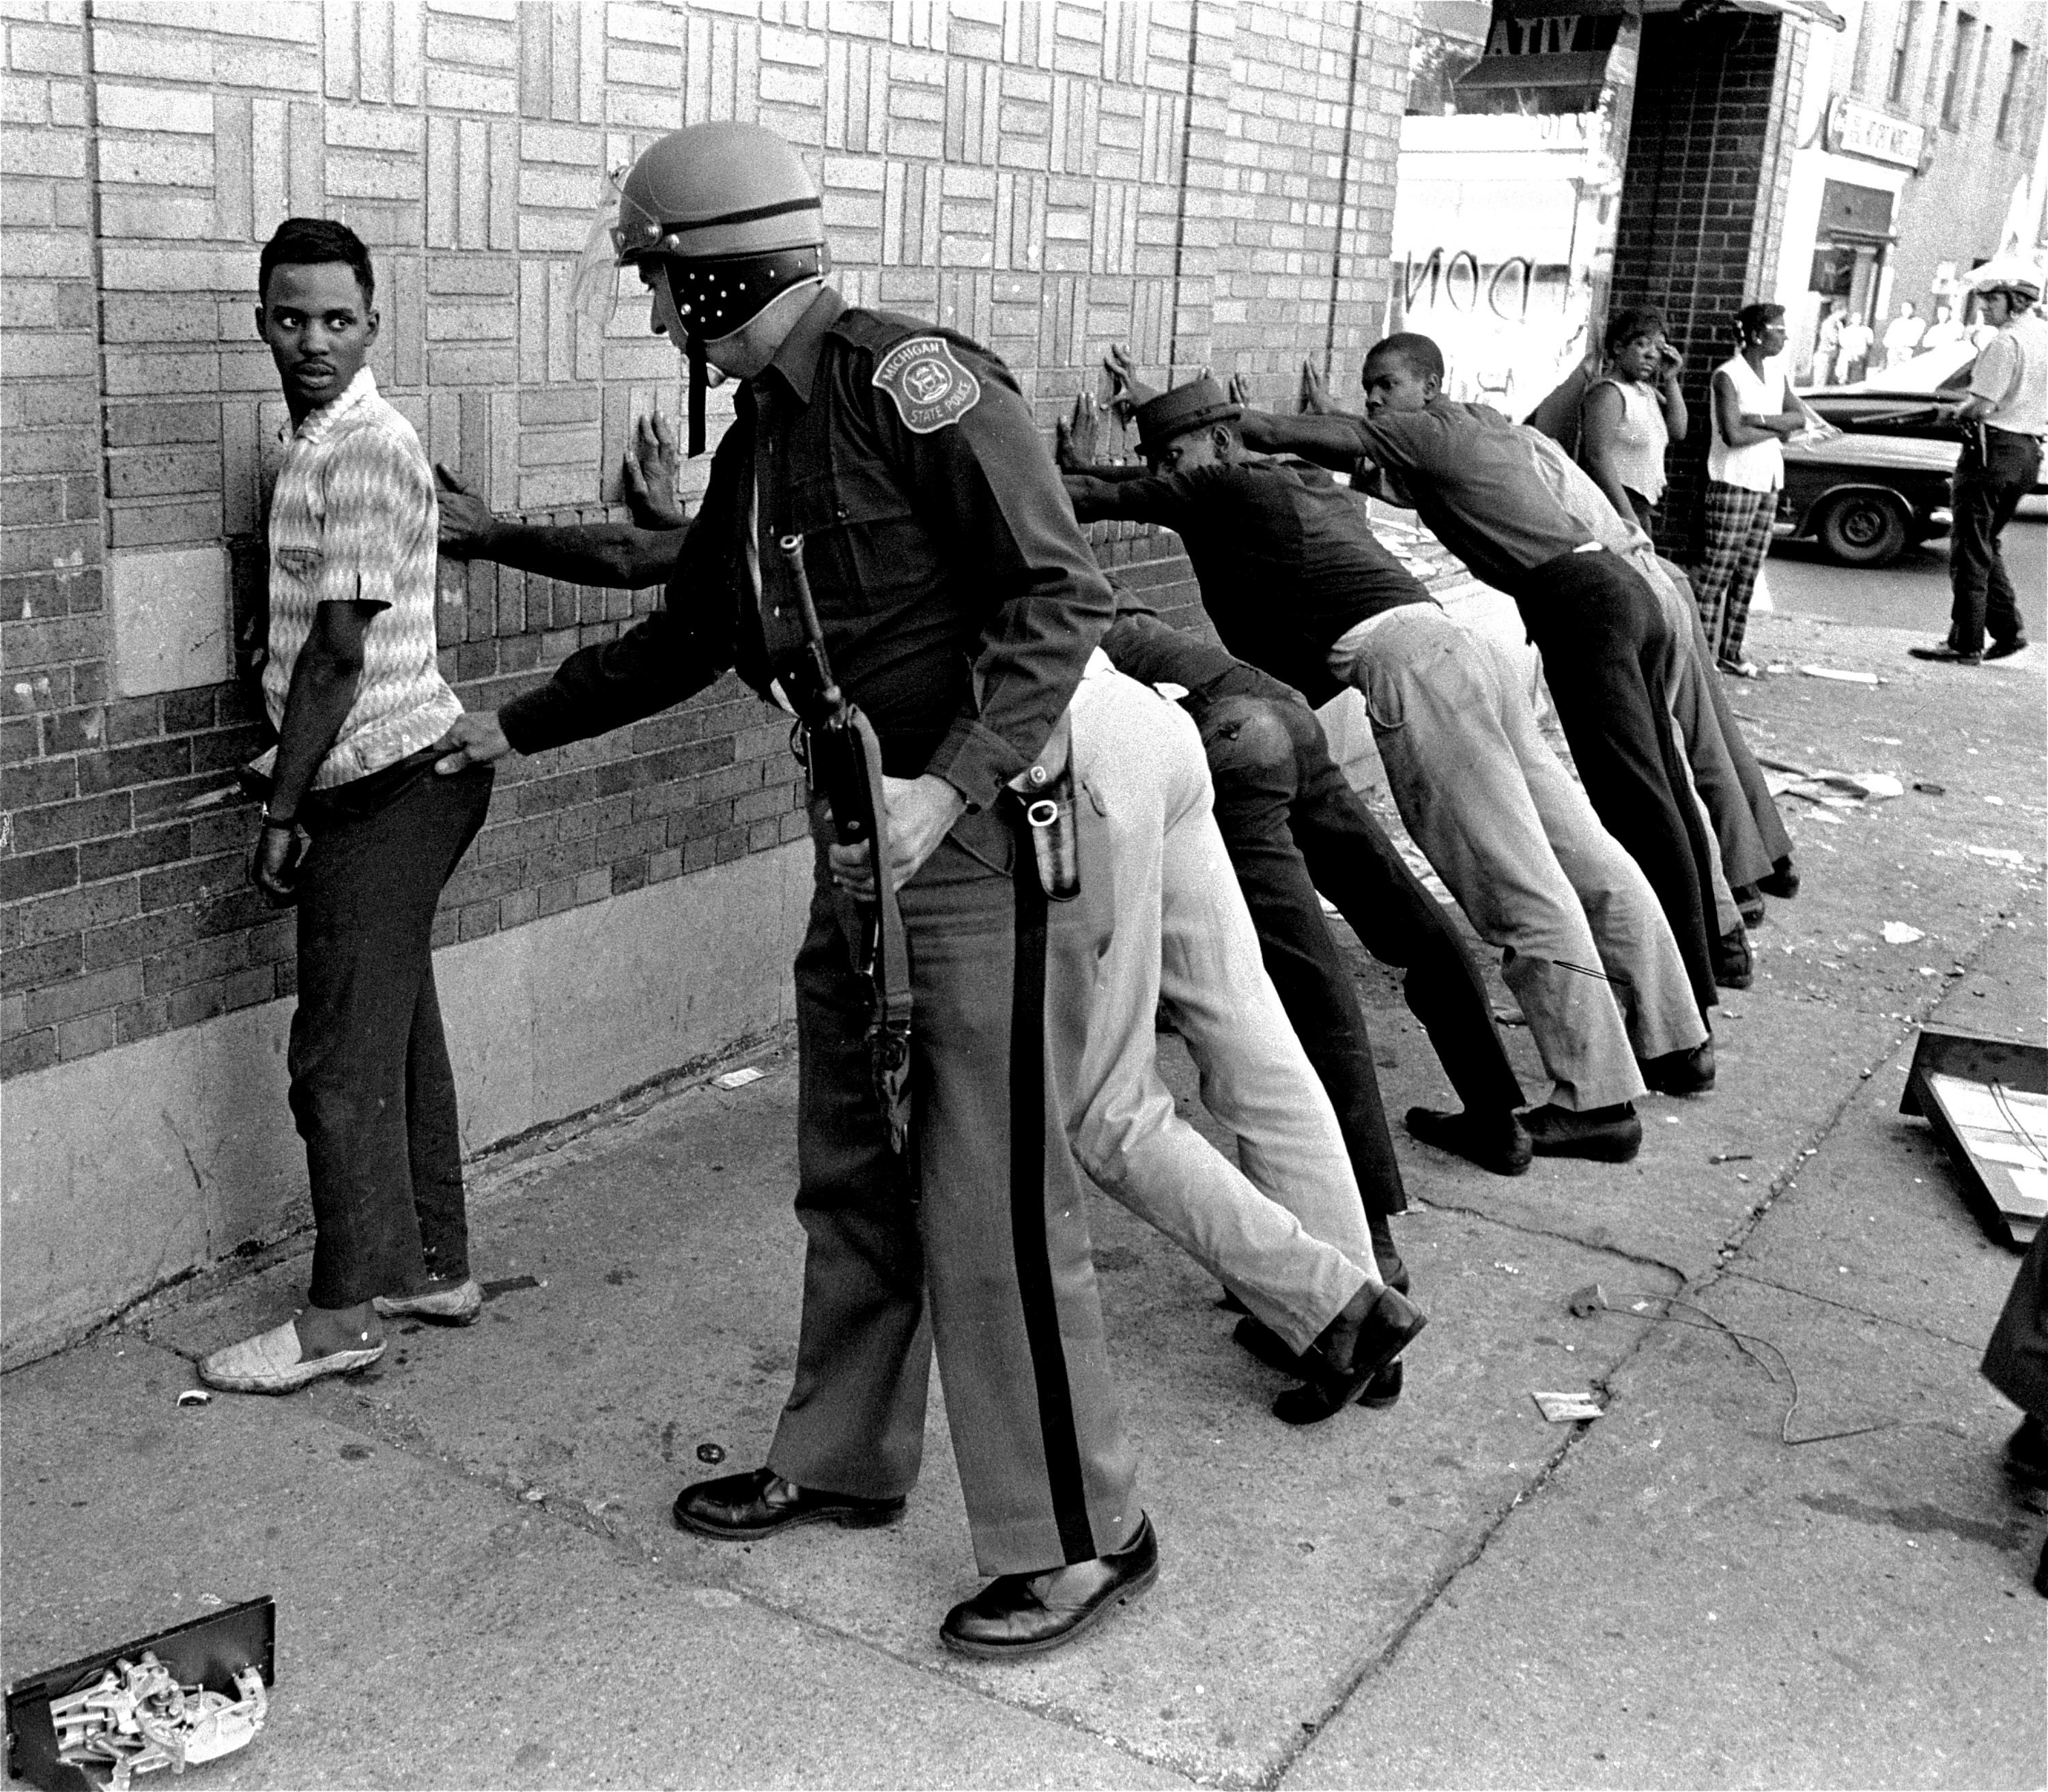 Flashback: Detroit Erupts Into Riots